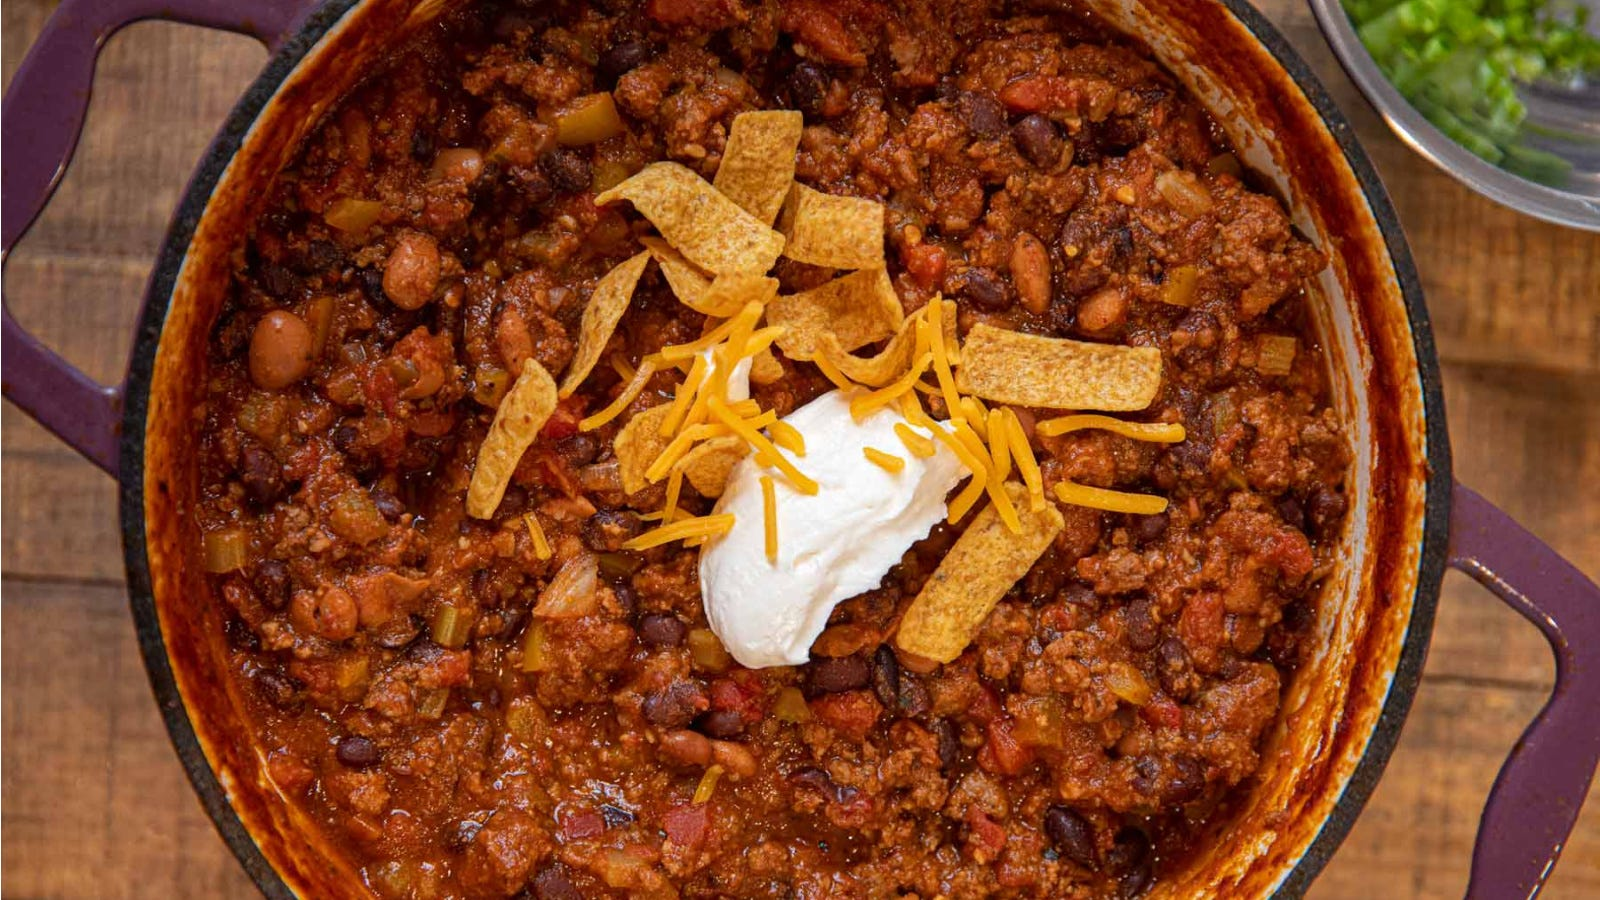 A large dutch oven filled with taco chili, topped with Fritos, cheddar cheese and a dollop of sour cream, with a side of chives.